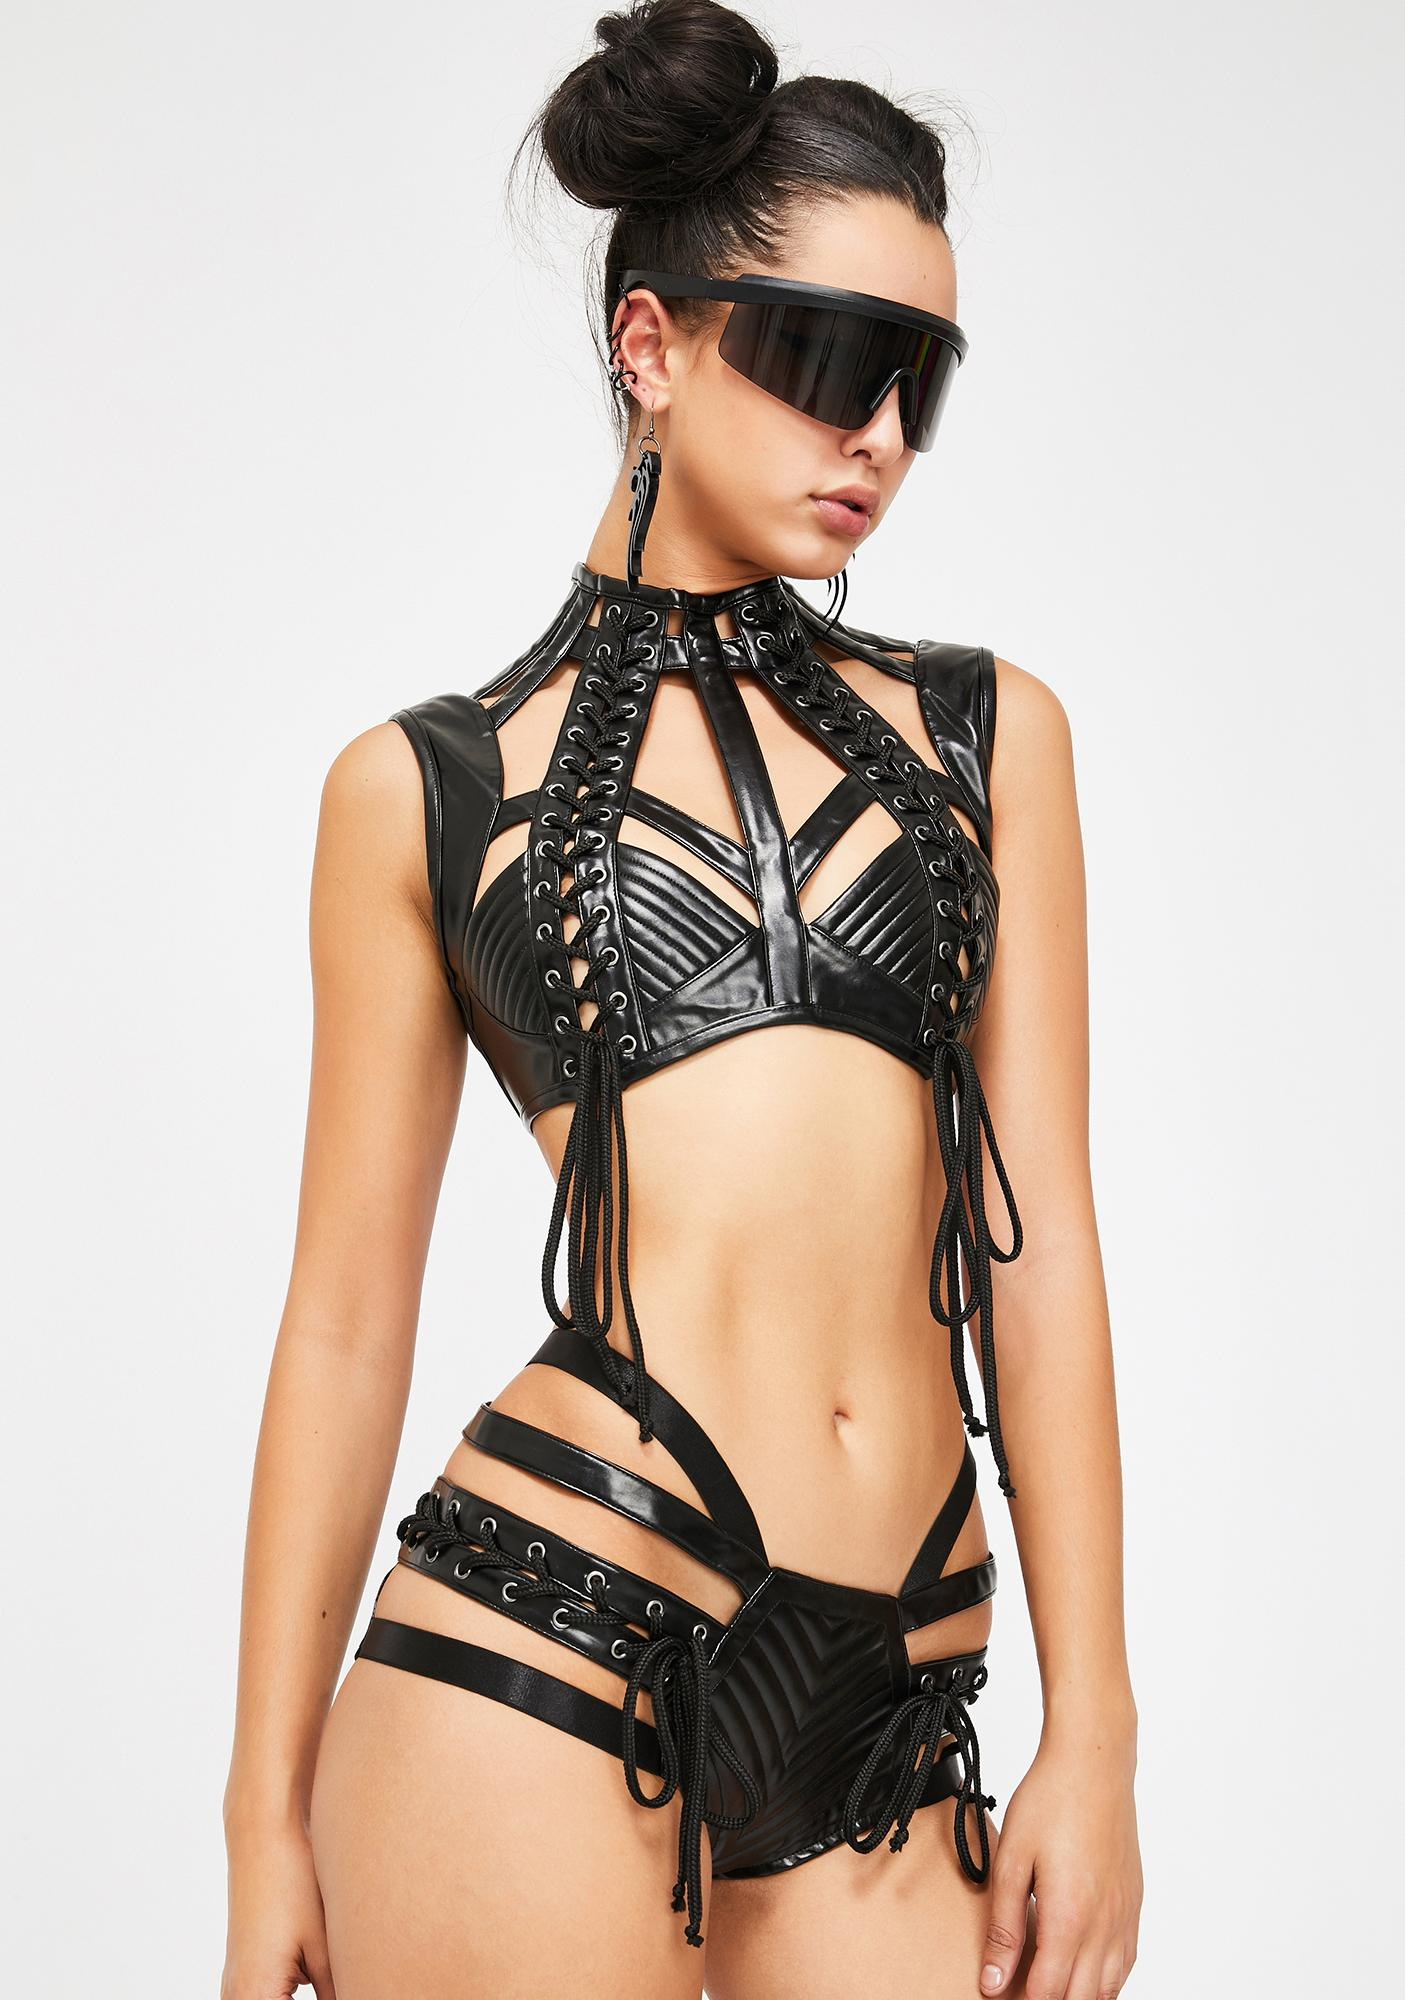 Club Exx Lunar Rude Awakening Harness Bra Top